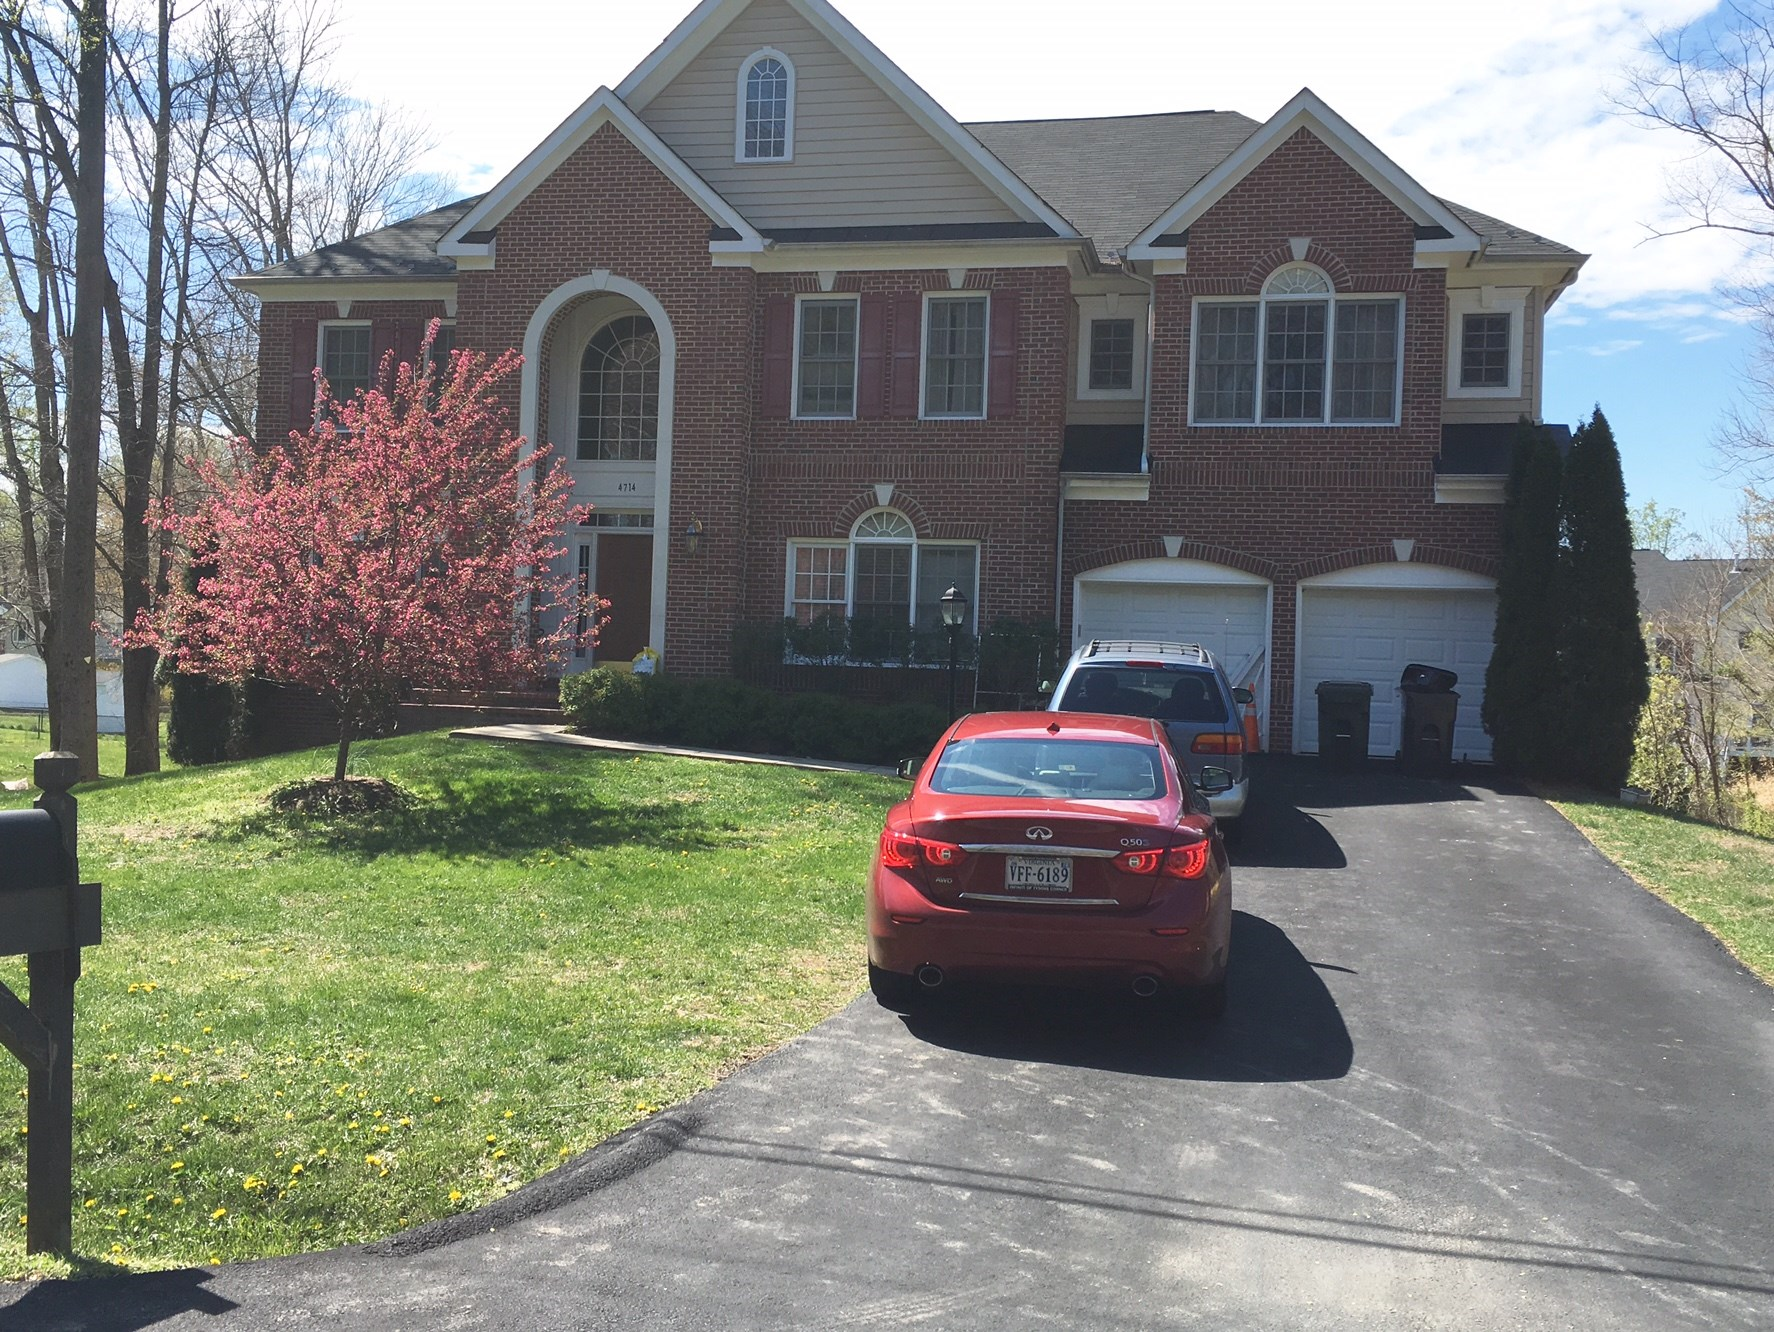 Offered Home To Rent In Fairfax Va Rent A Houses Apartments Flats Commercial Space